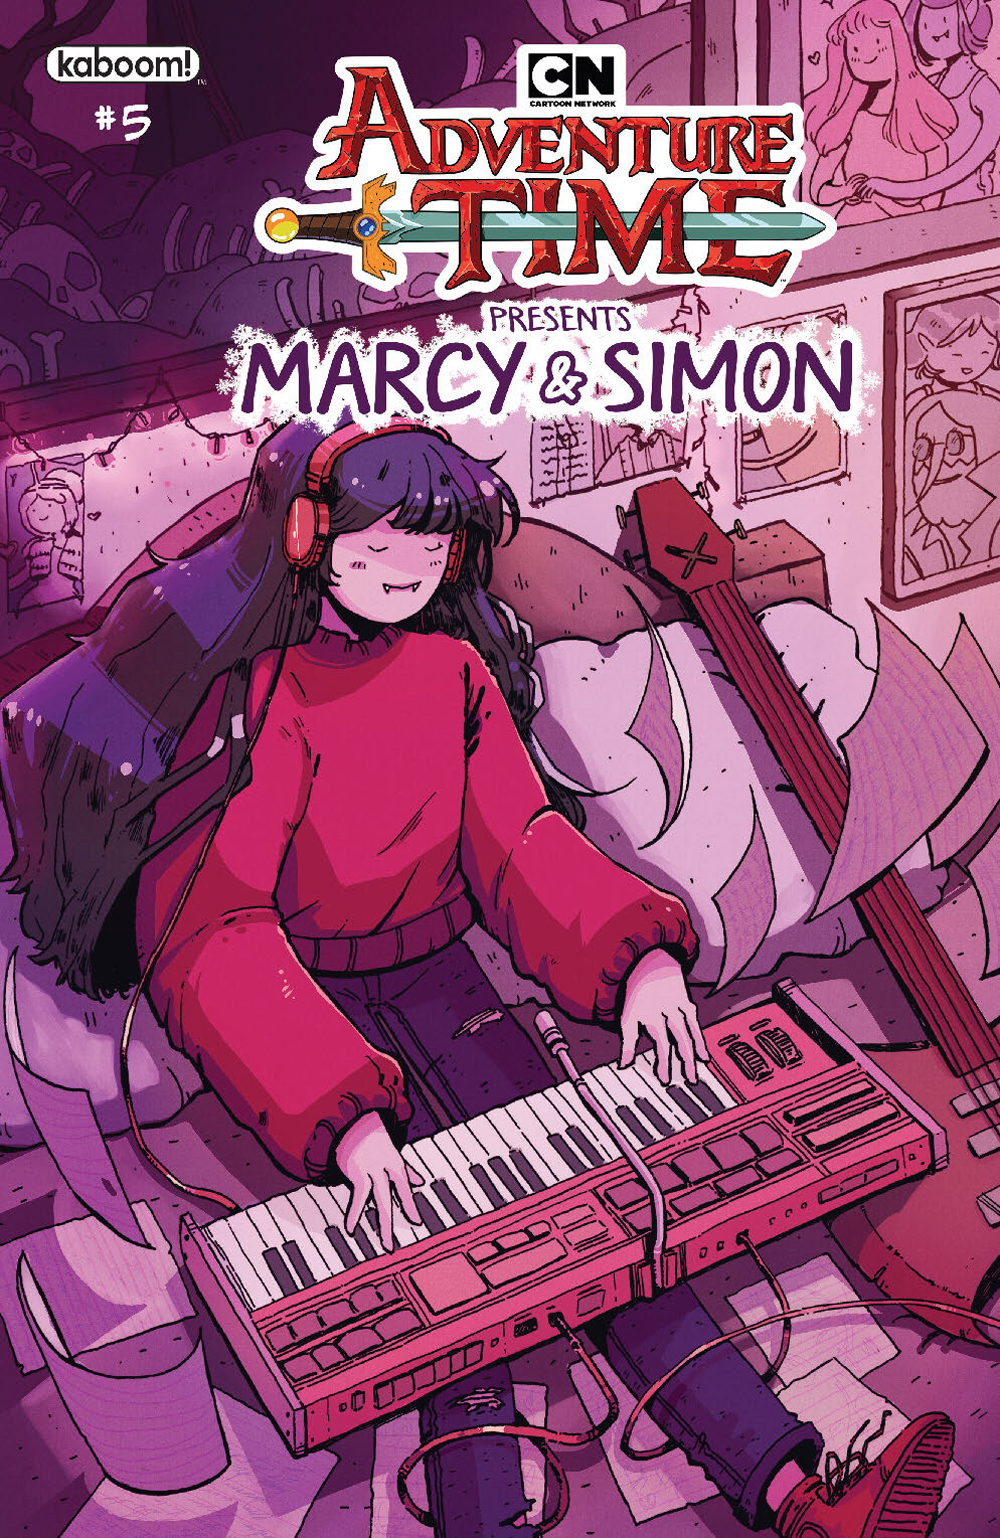 ADVENTURE TIME MARCY & SIMON #5 (OF 6) PREORDER MARCY